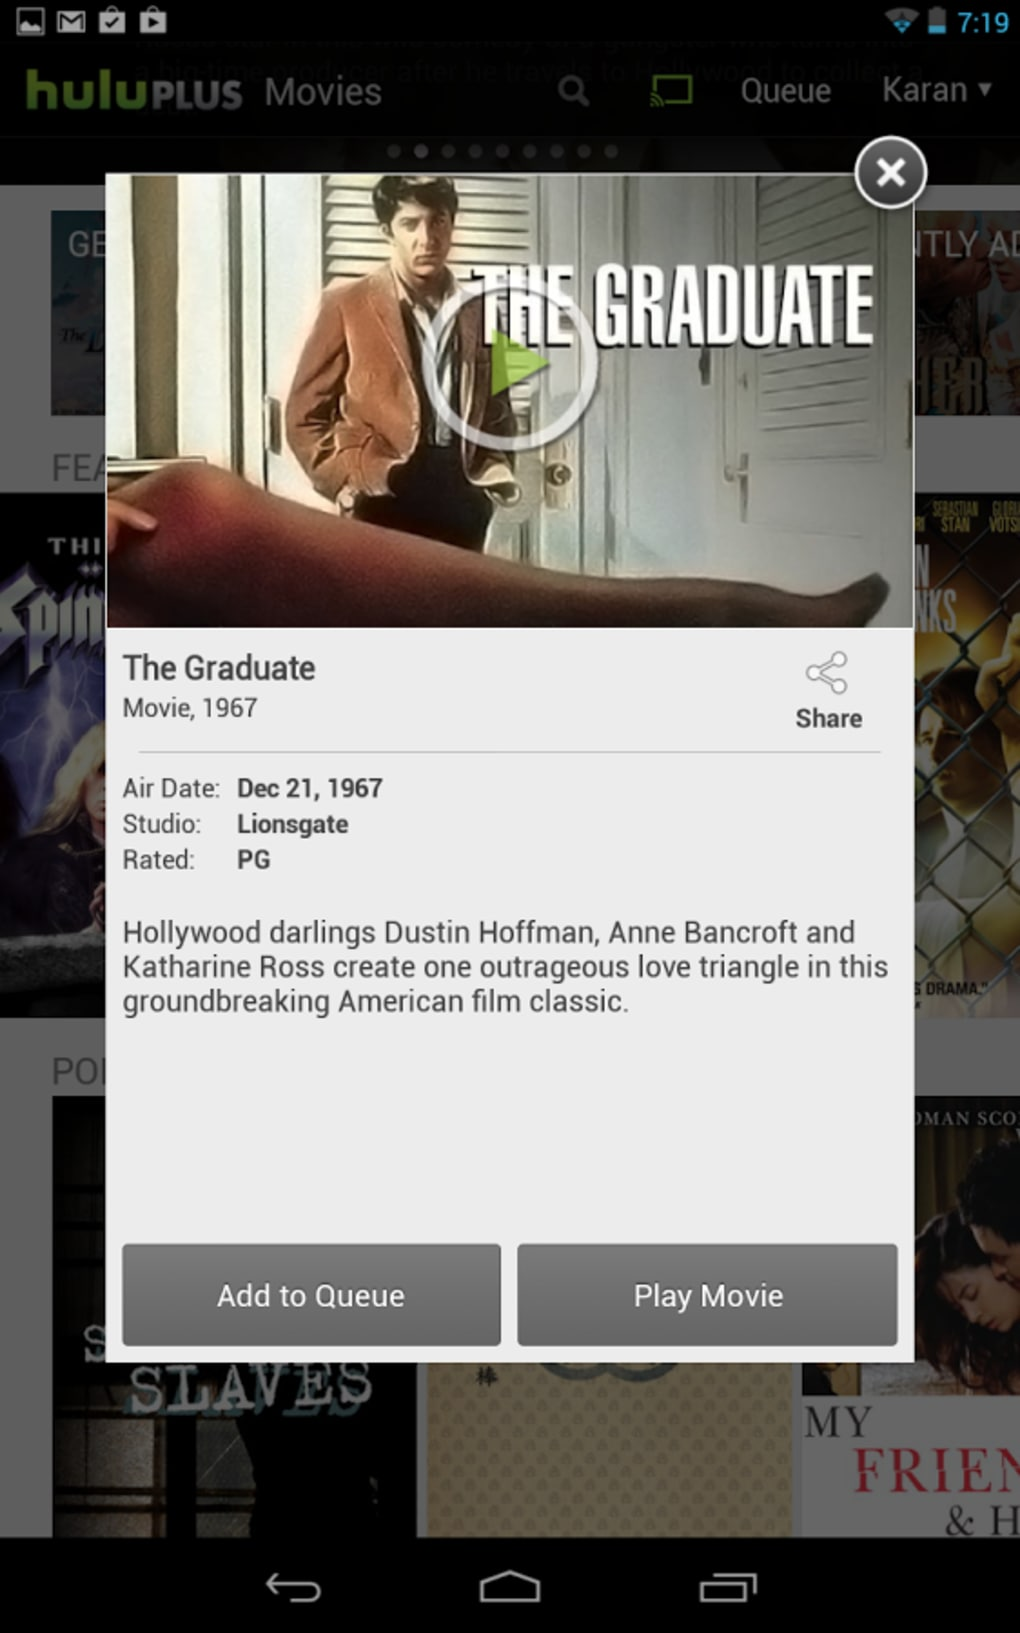 Download hulu plus for android